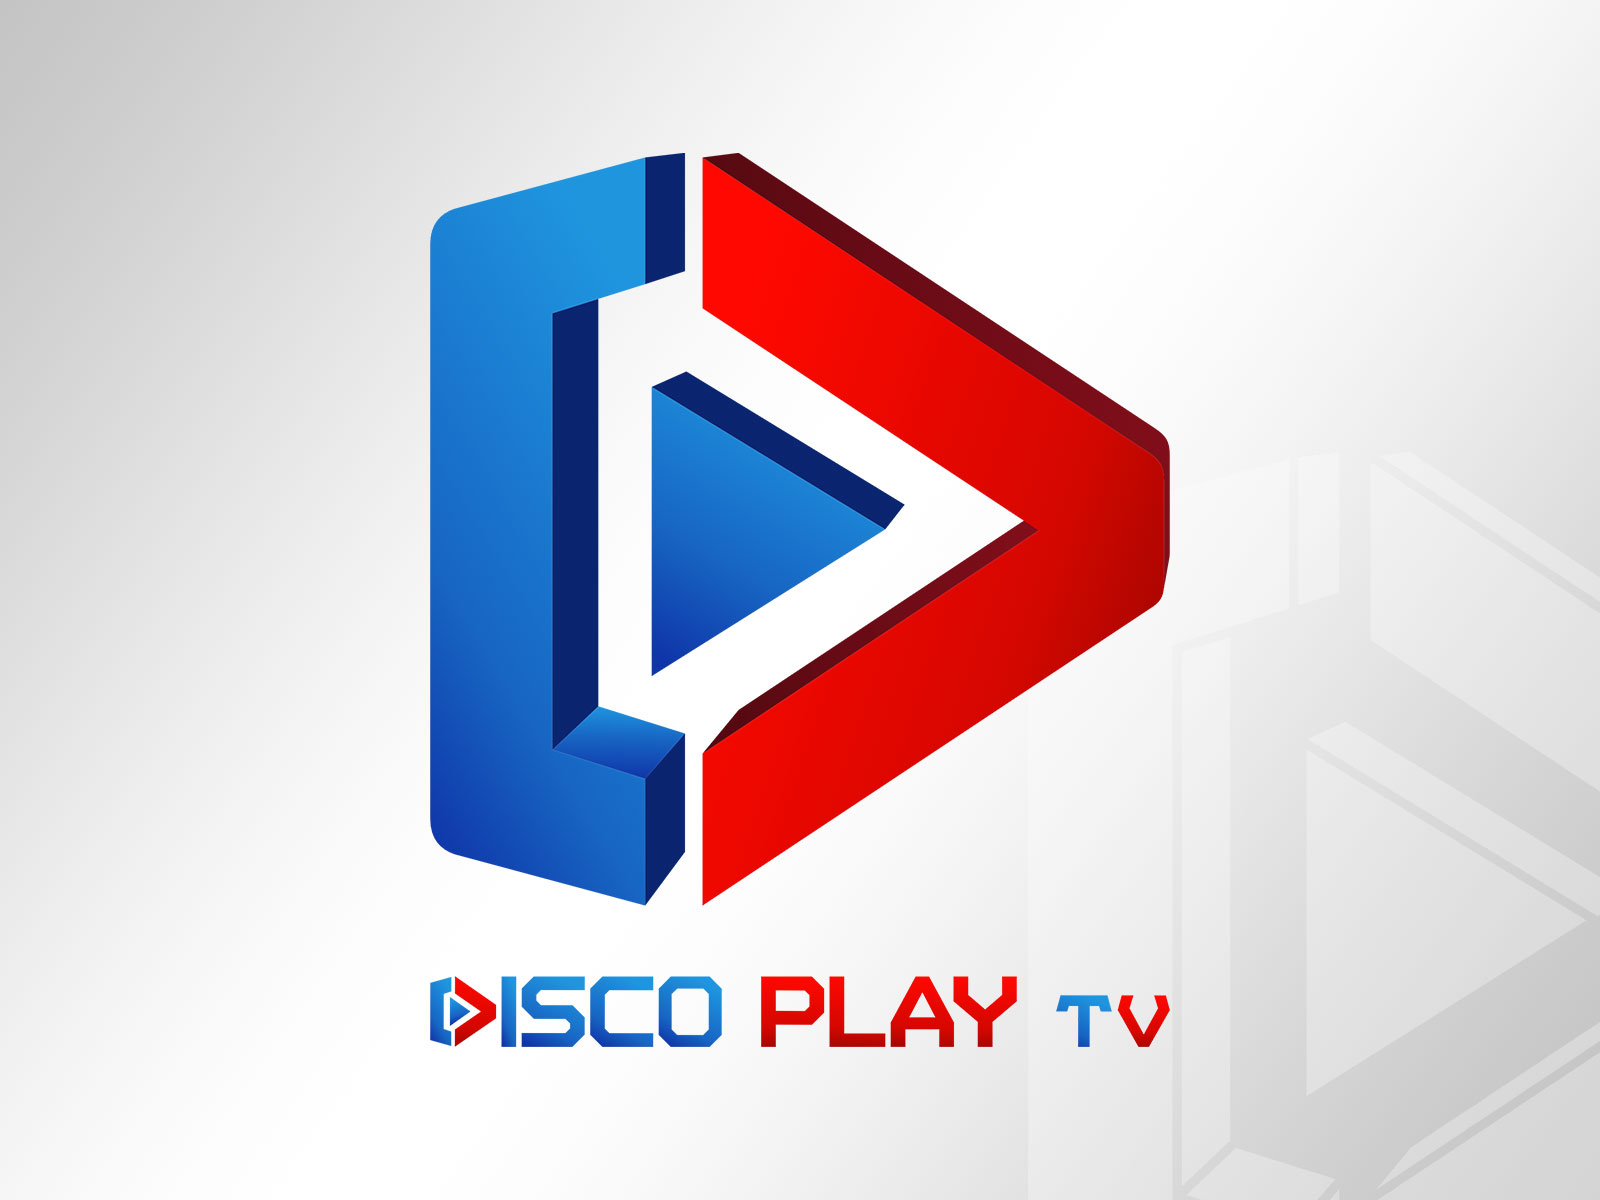 Logo Disco Play TV